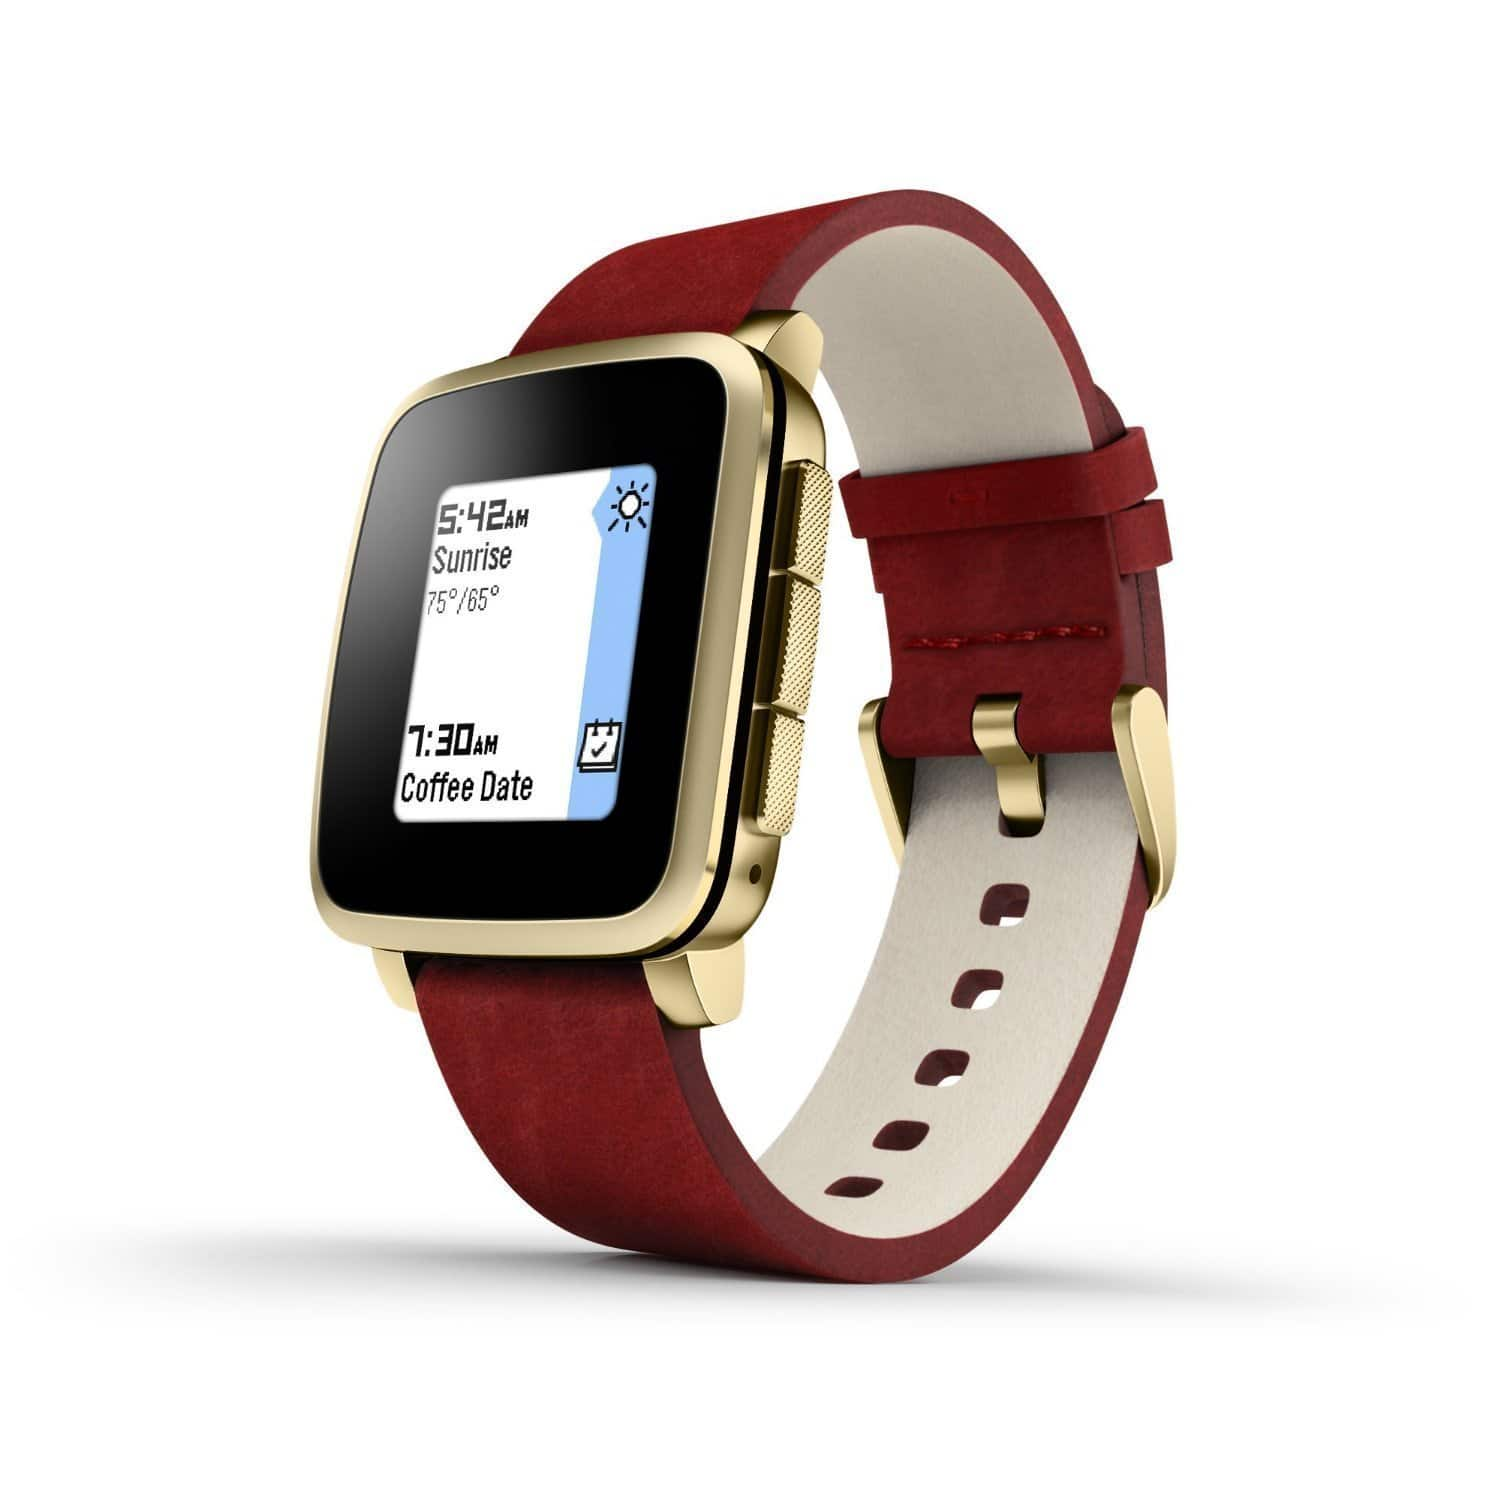 Pebble Time Steel Smartwatch for Apple/Android Devices - Gold (Certified Refurbished) For $99.99 @ Amazon​